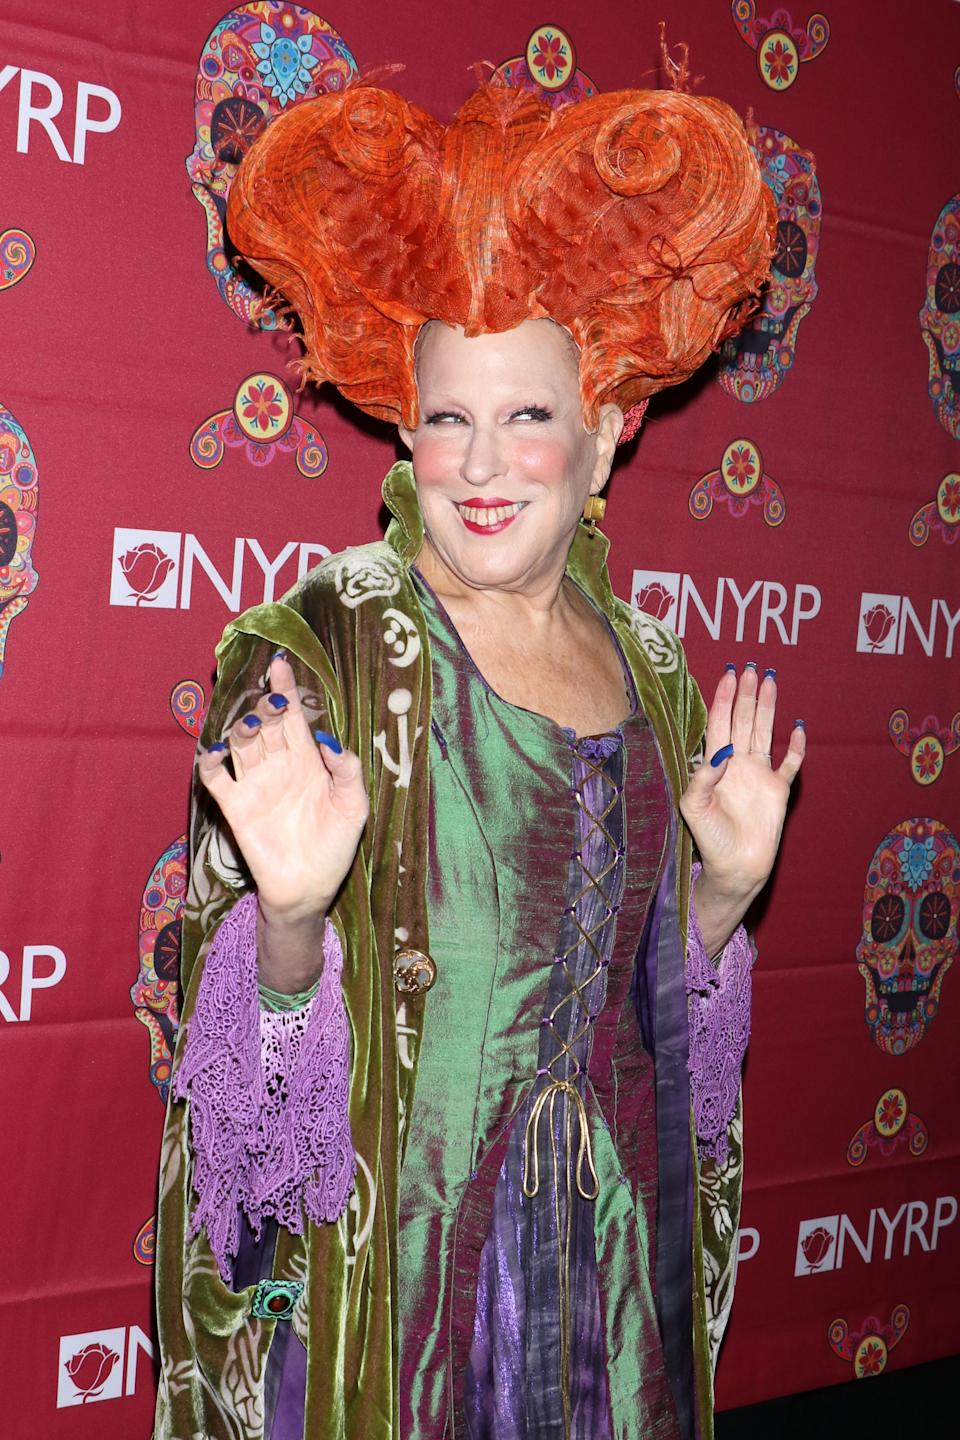 """<strong>Bette Midler as Winifred Sanderson</strong><br><br>Bette Midler automatically won Halloween when, in 2016, she dressed up as Winifred Sanderson, her character from the 1993 Disney Original <em>Hocus Pocus</em>. Maybe the costume sent magical vibes into the universe, because the Disney Channel recently announced it's planning to <a href=""""https://www.refinery29.com/en-us/2017/07/164040/hocus-pocus-twitter-remake-zendaya"""" rel=""""nofollow noopener"""" target=""""_blank"""" data-ylk=""""slk:remake Hocus Pocus."""" class=""""link rapid-noclick-resp"""">remake <em>Hocus Pocus</em>.</a><span class=""""copyright"""">Gregory Pace/REX/Shutterstock</span>"""